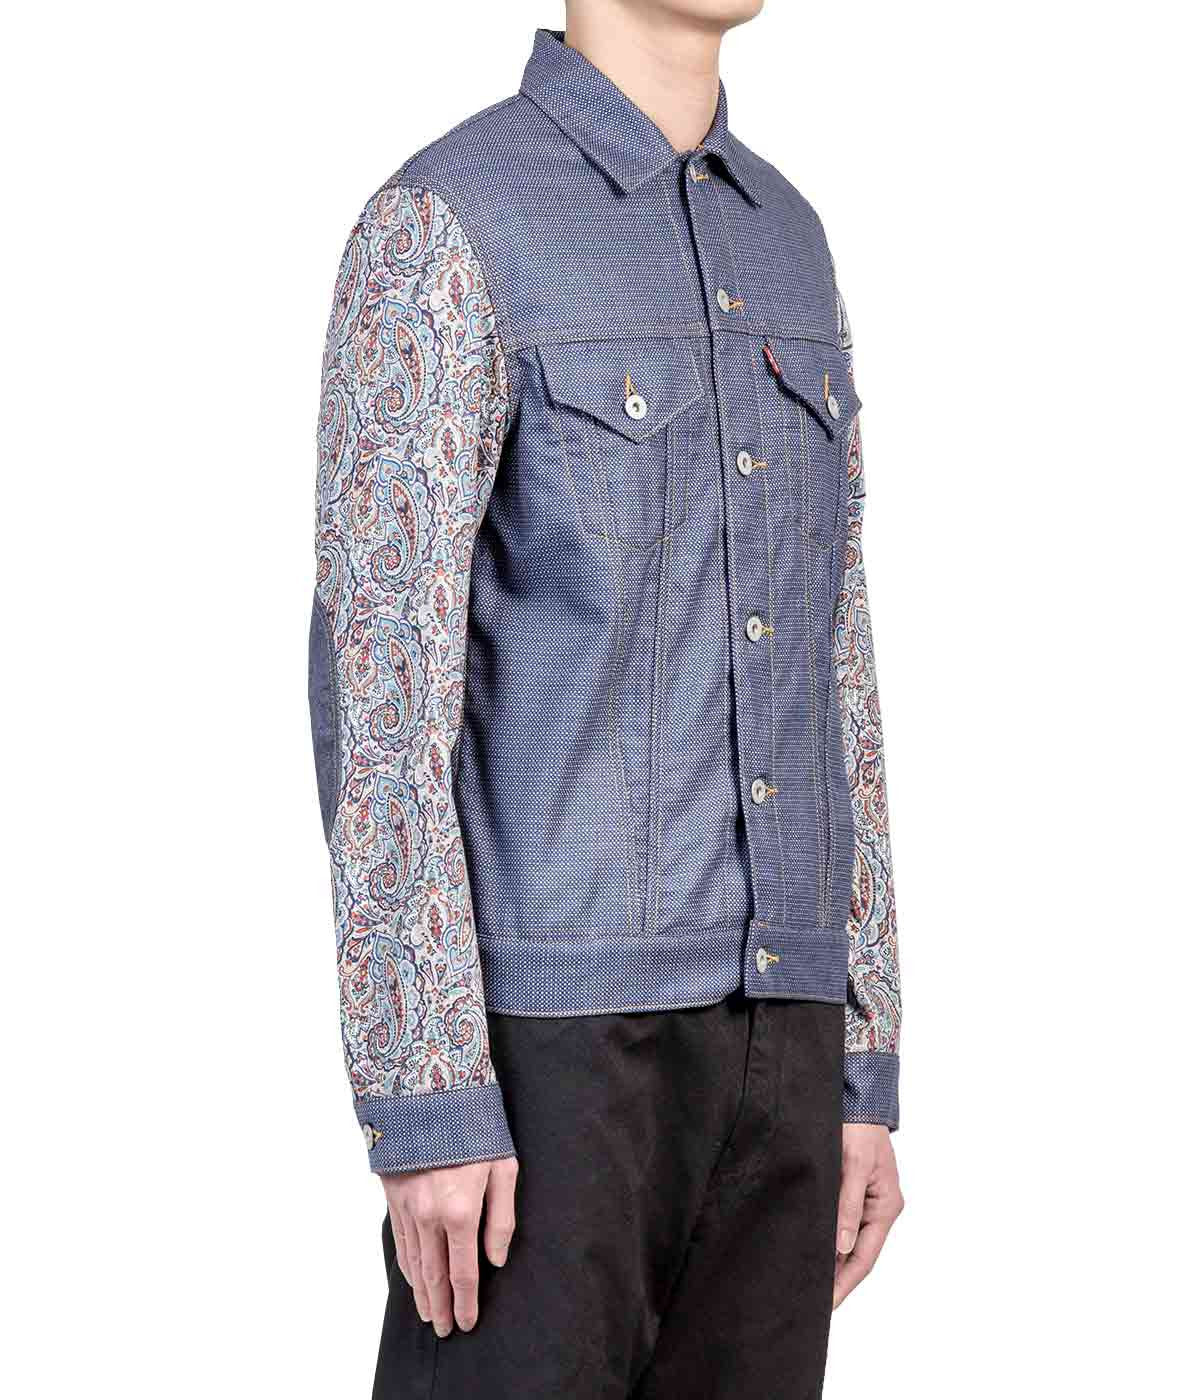 Multicoloured Paisley Levi's Jacket